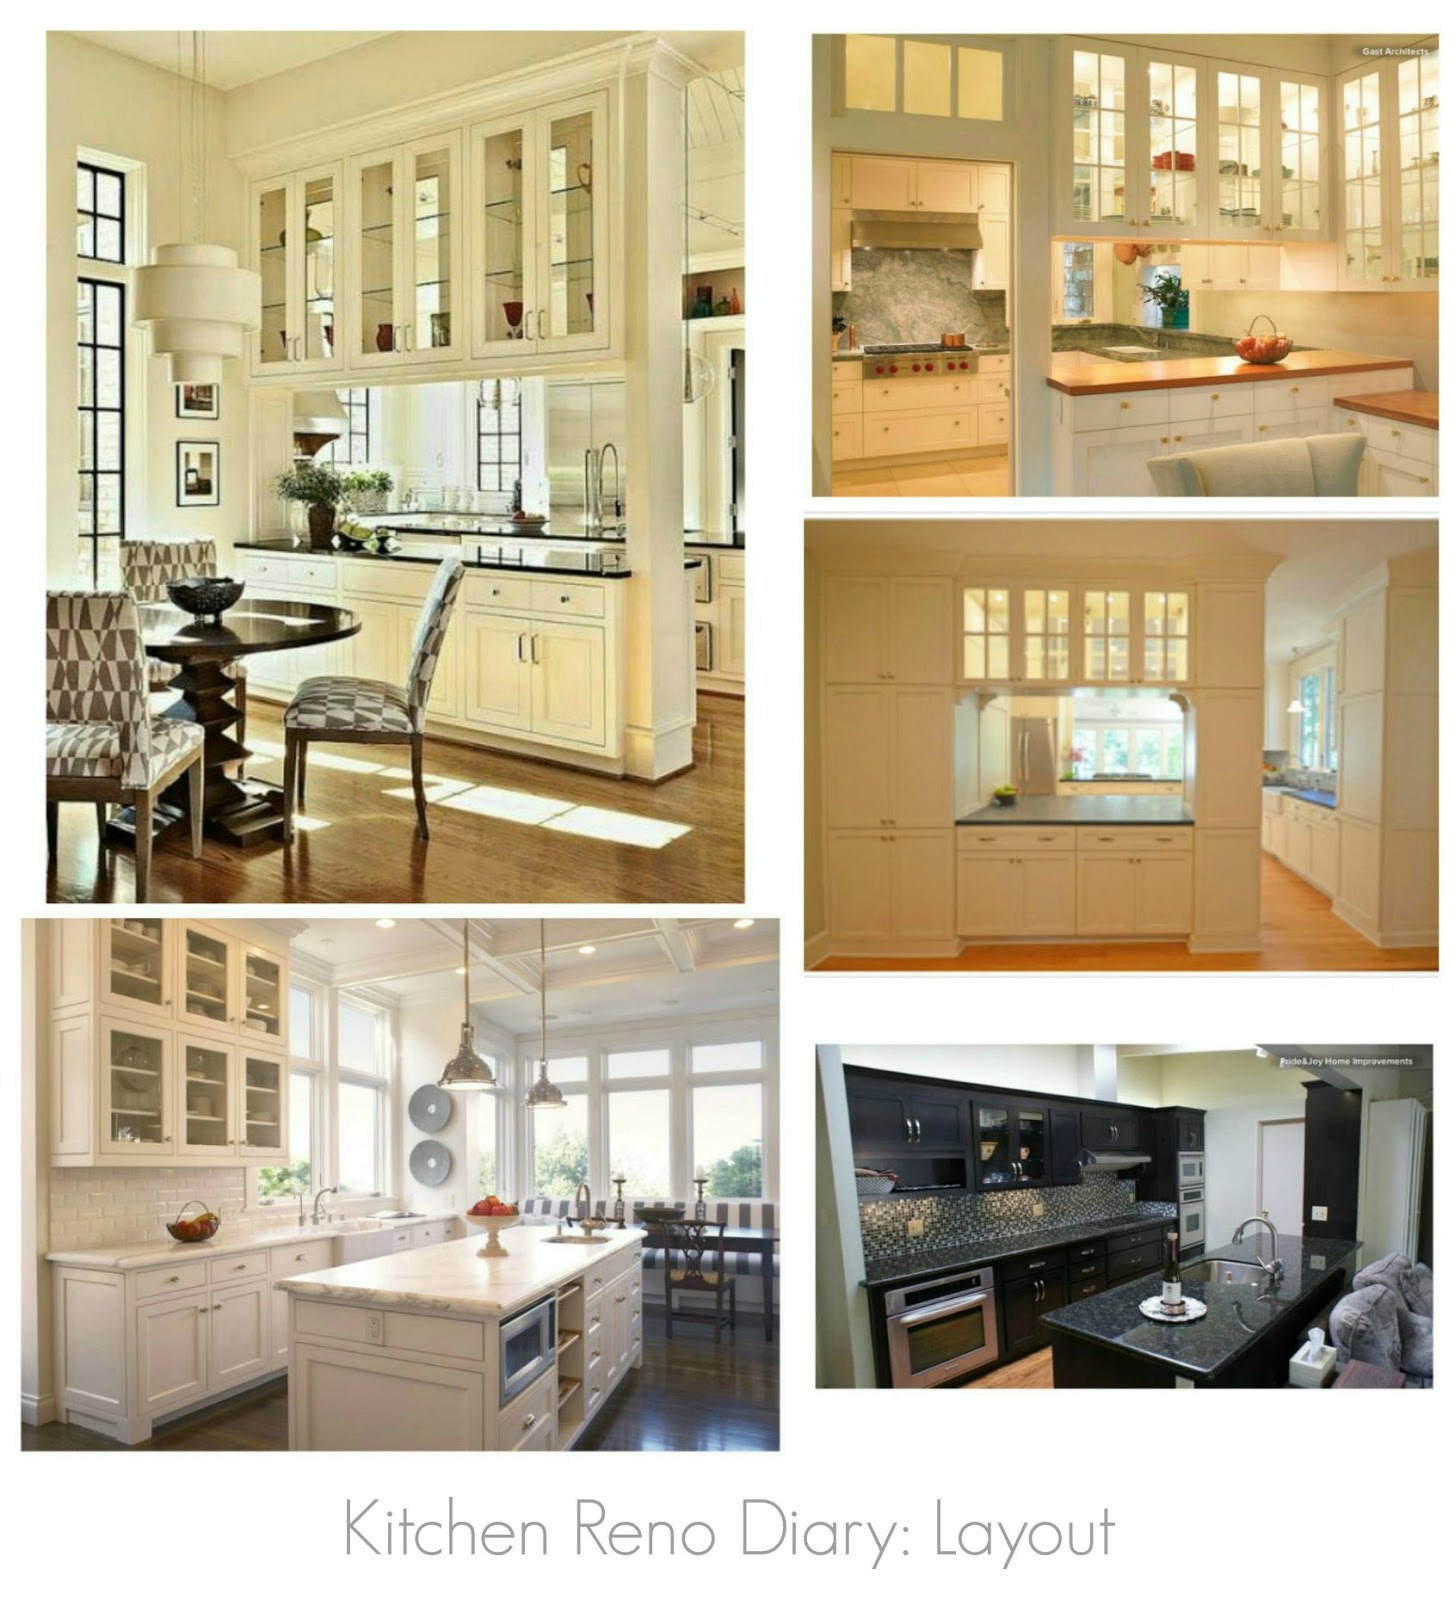 Kitchen Reno Diary 2 {Inspiration Board}